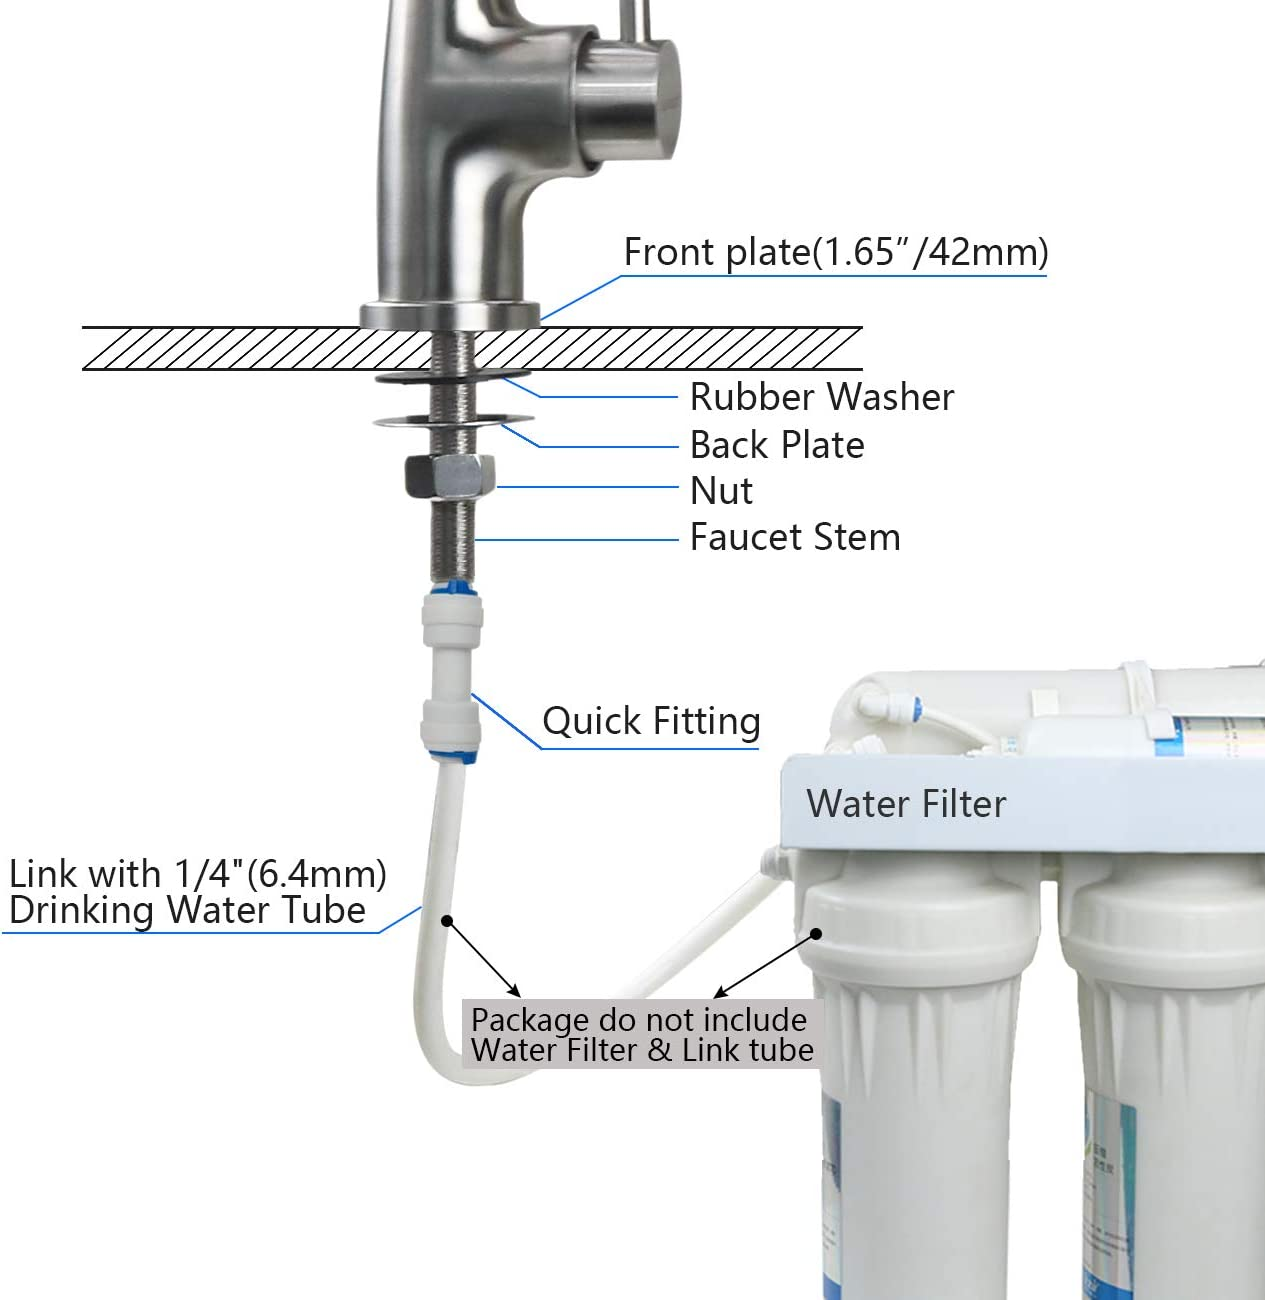 Drinking Water Filter Tap,Stainless Steel Touch On Kitchen Sink Purifier Faucet ,Fits All Drinking Water Filter Systems /& Reverse Osmosis Systems(Lead Free Single Handle) Brushed